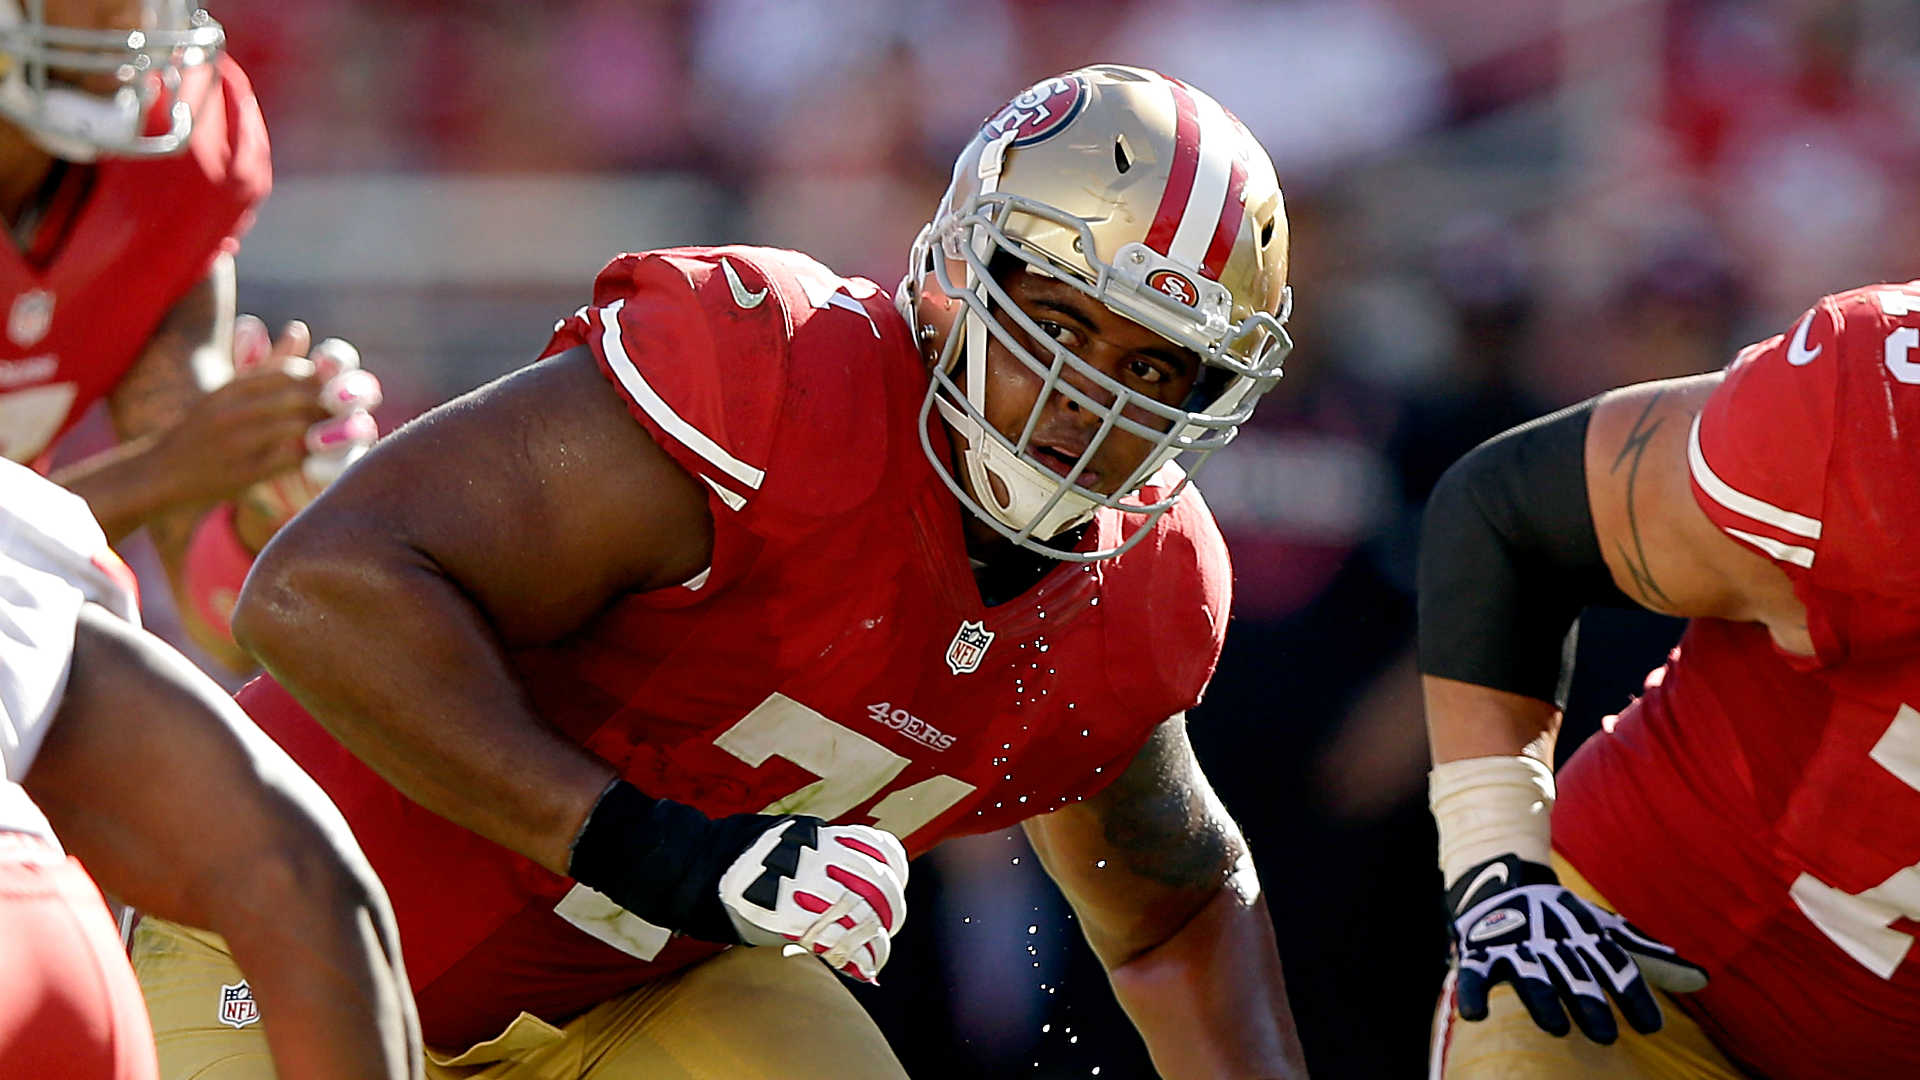 Jonathan Martin cut by 49ers